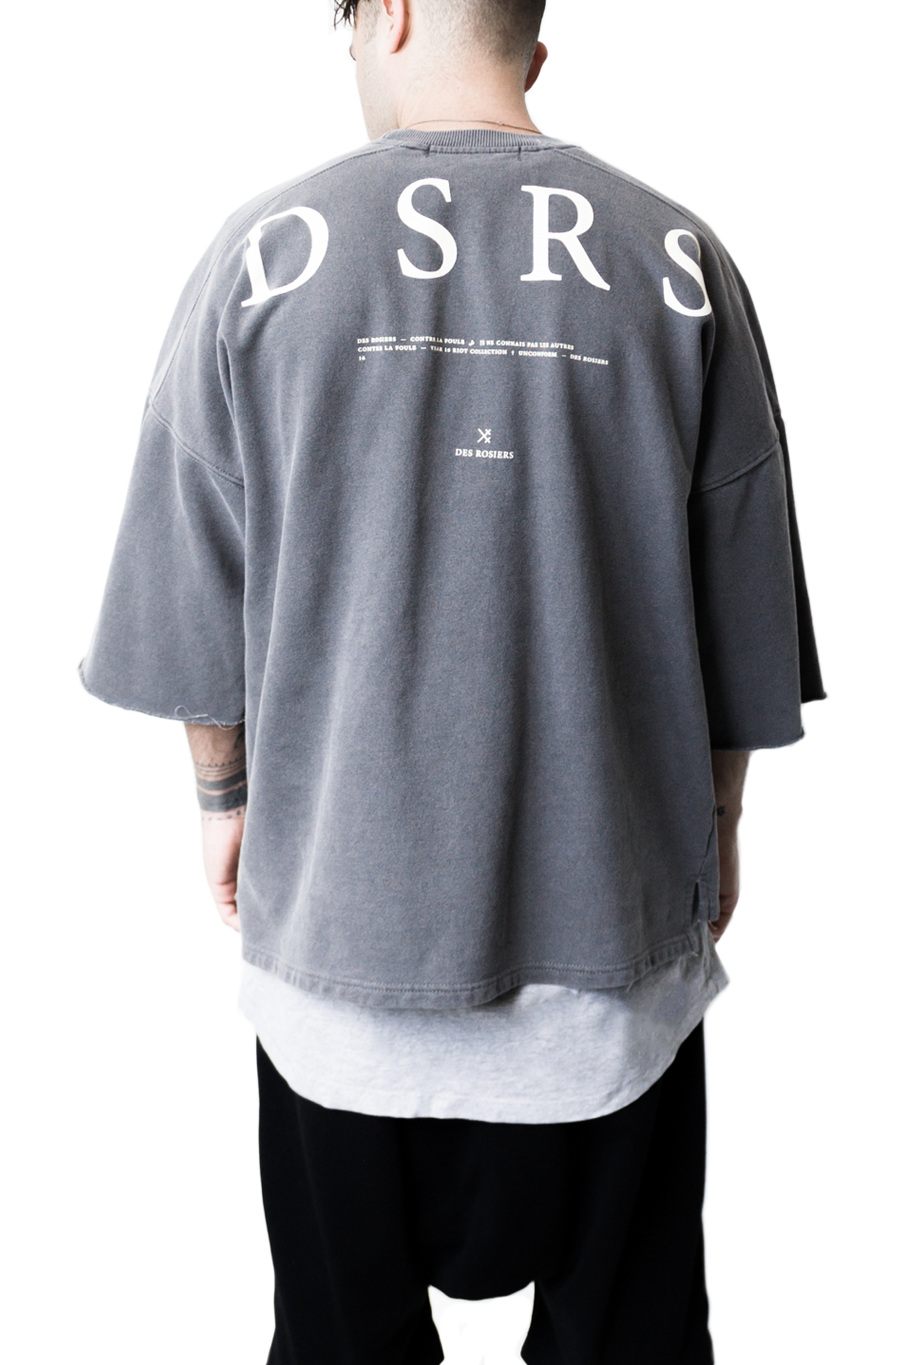 Crewneck DSRS dark gray